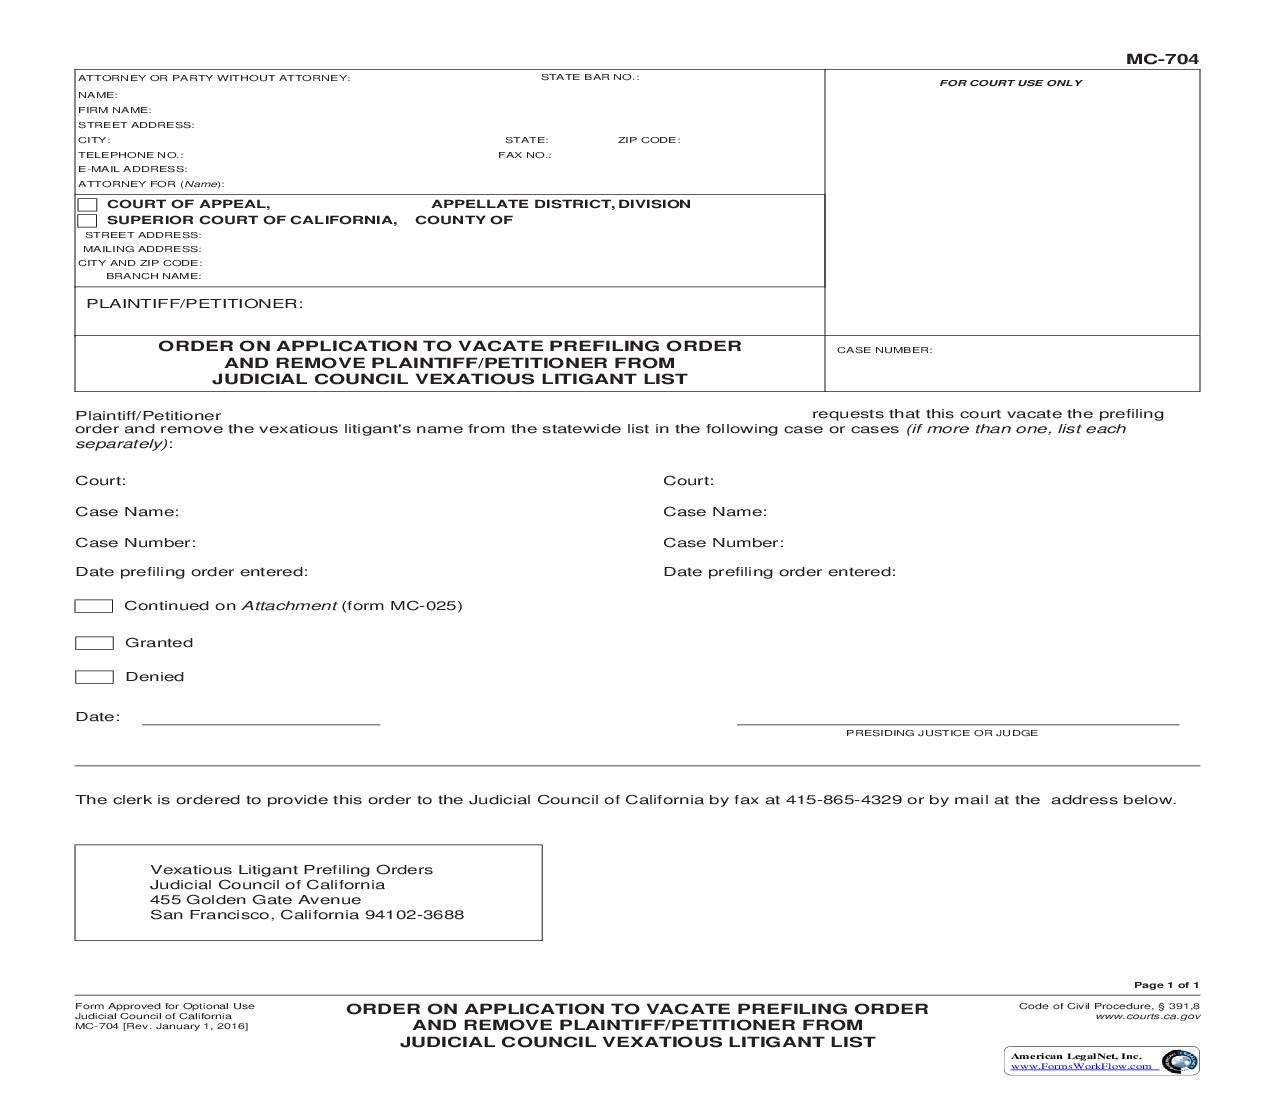 Order On Application To Vacate Prefiling Order And Remove Plaintiff-Petitioner {MC-704} | Pdf Fpdf Doc Docx | California